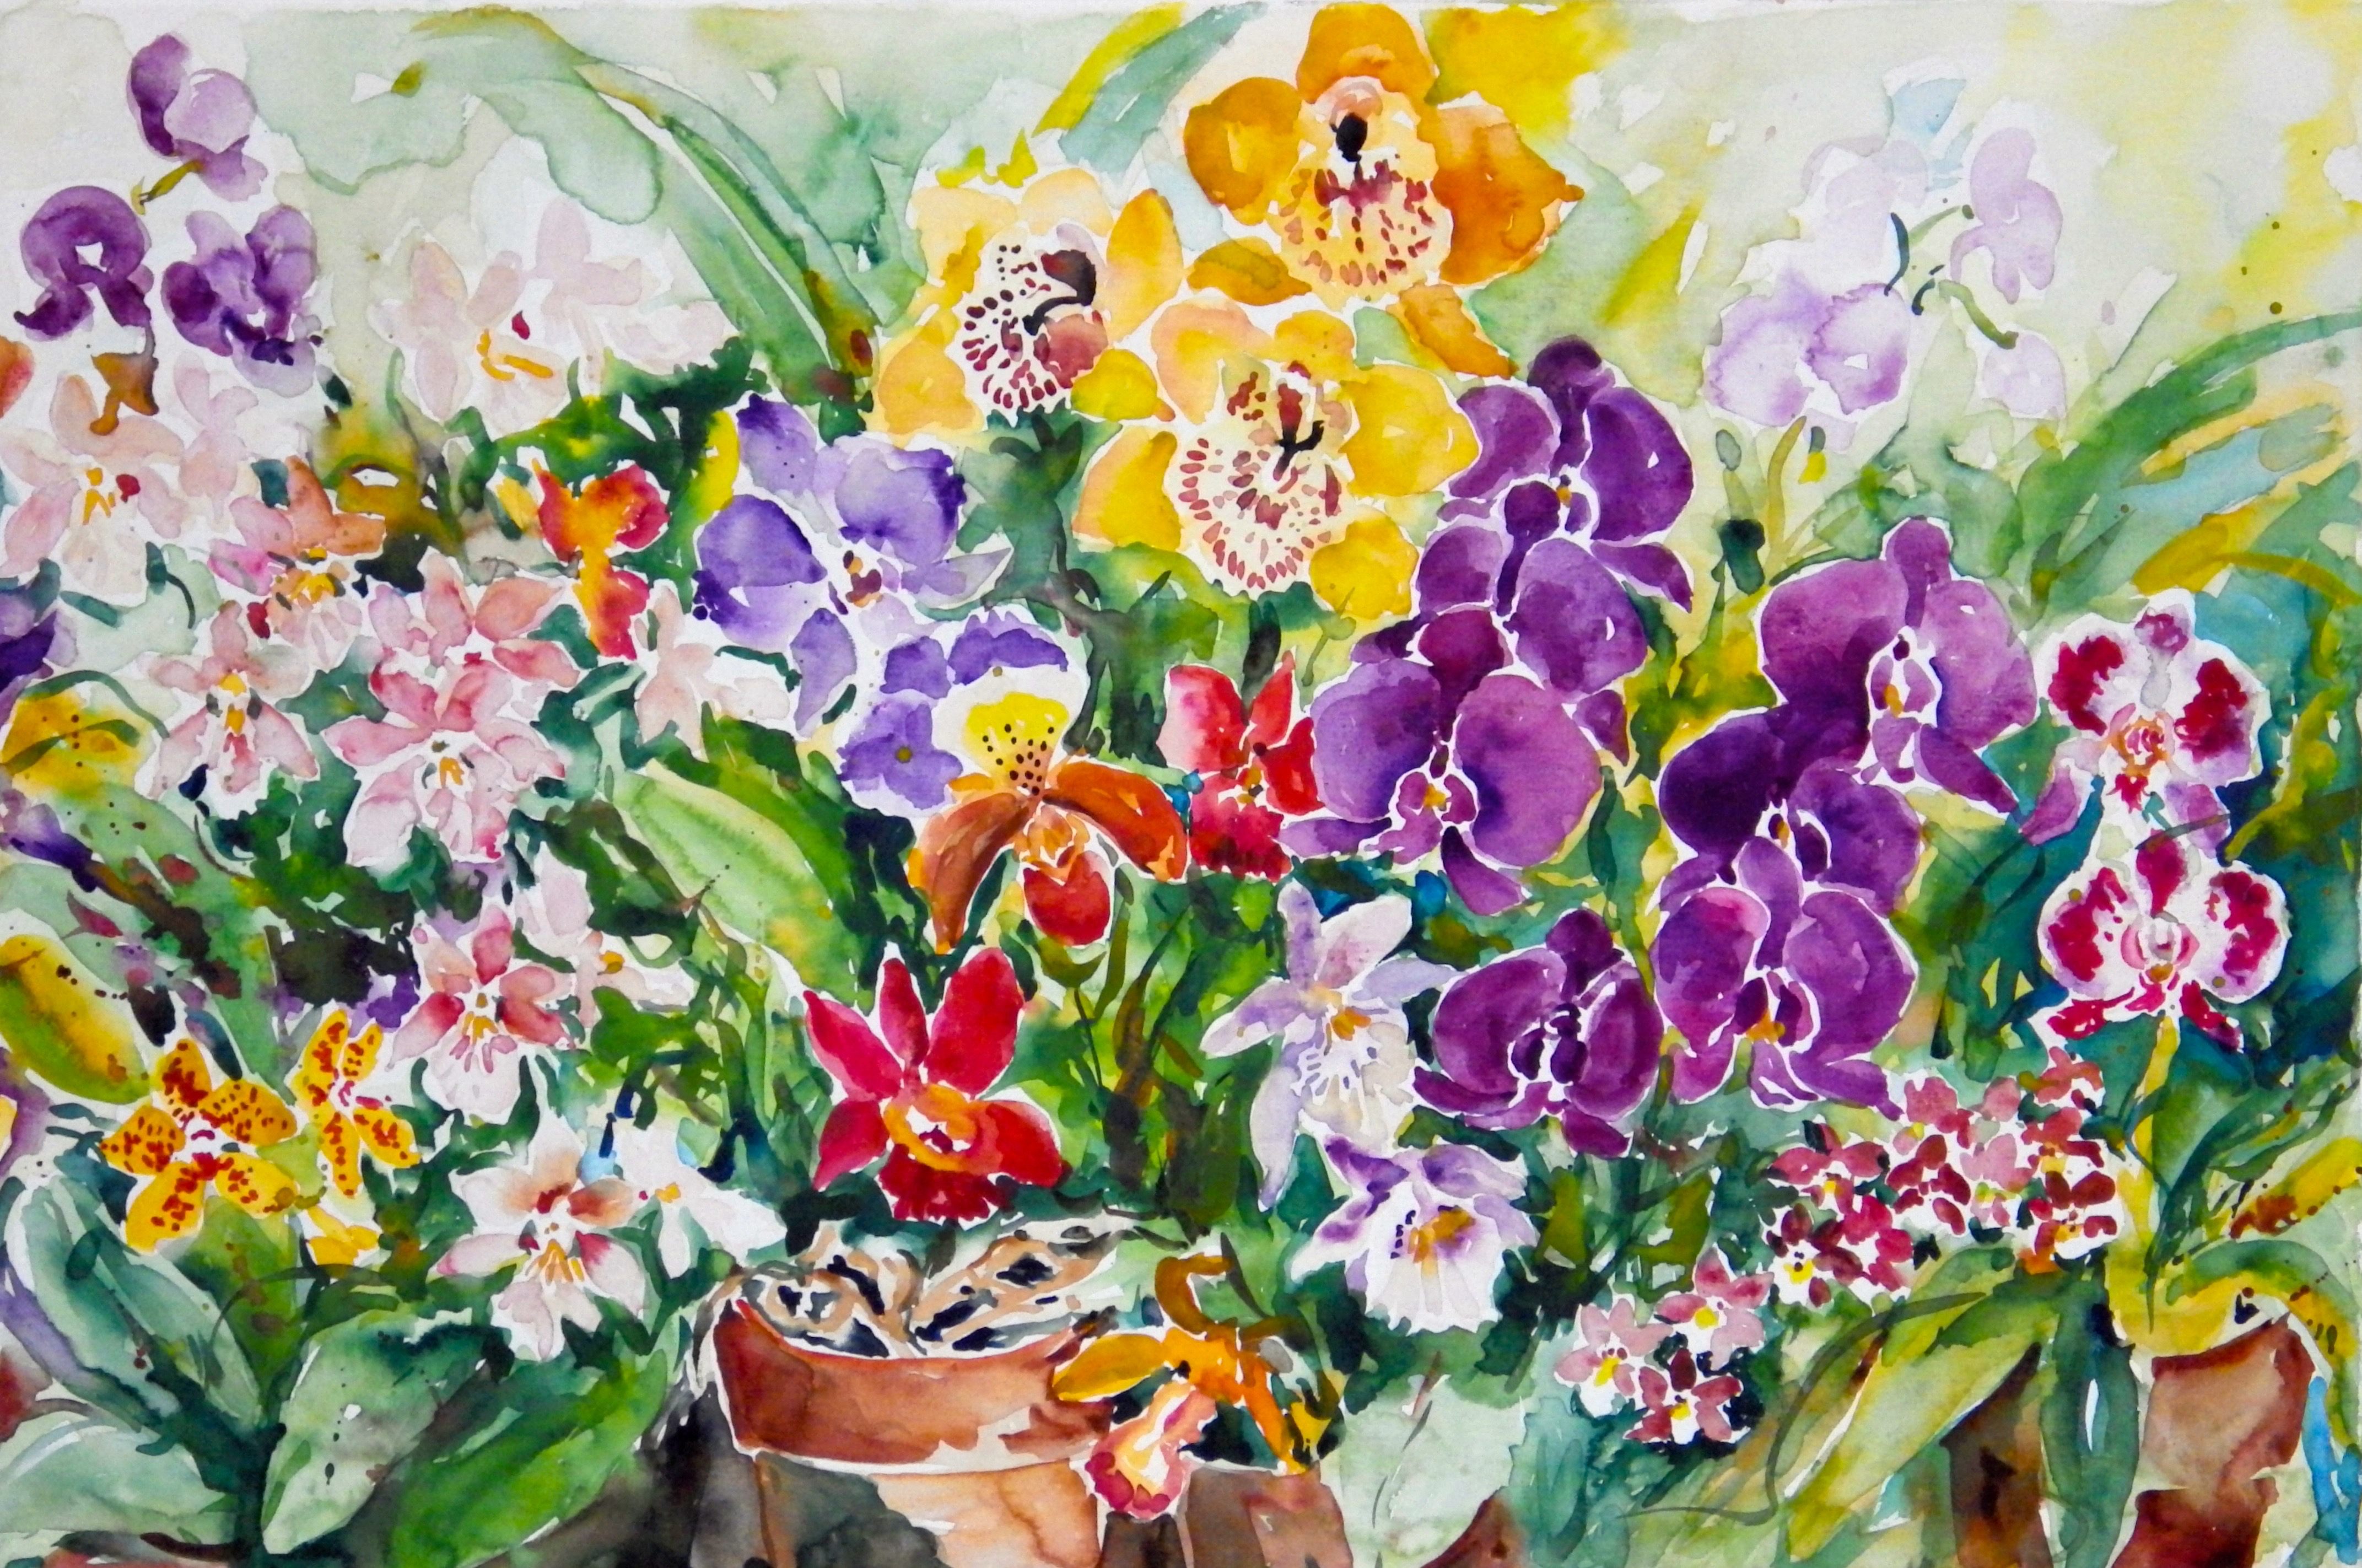 Ingrid Neuhofer Dohm, Orchids I, 2014, Original Watercolor, size_width{Orchids_I-1390656655.jpg} X 22 x  inches